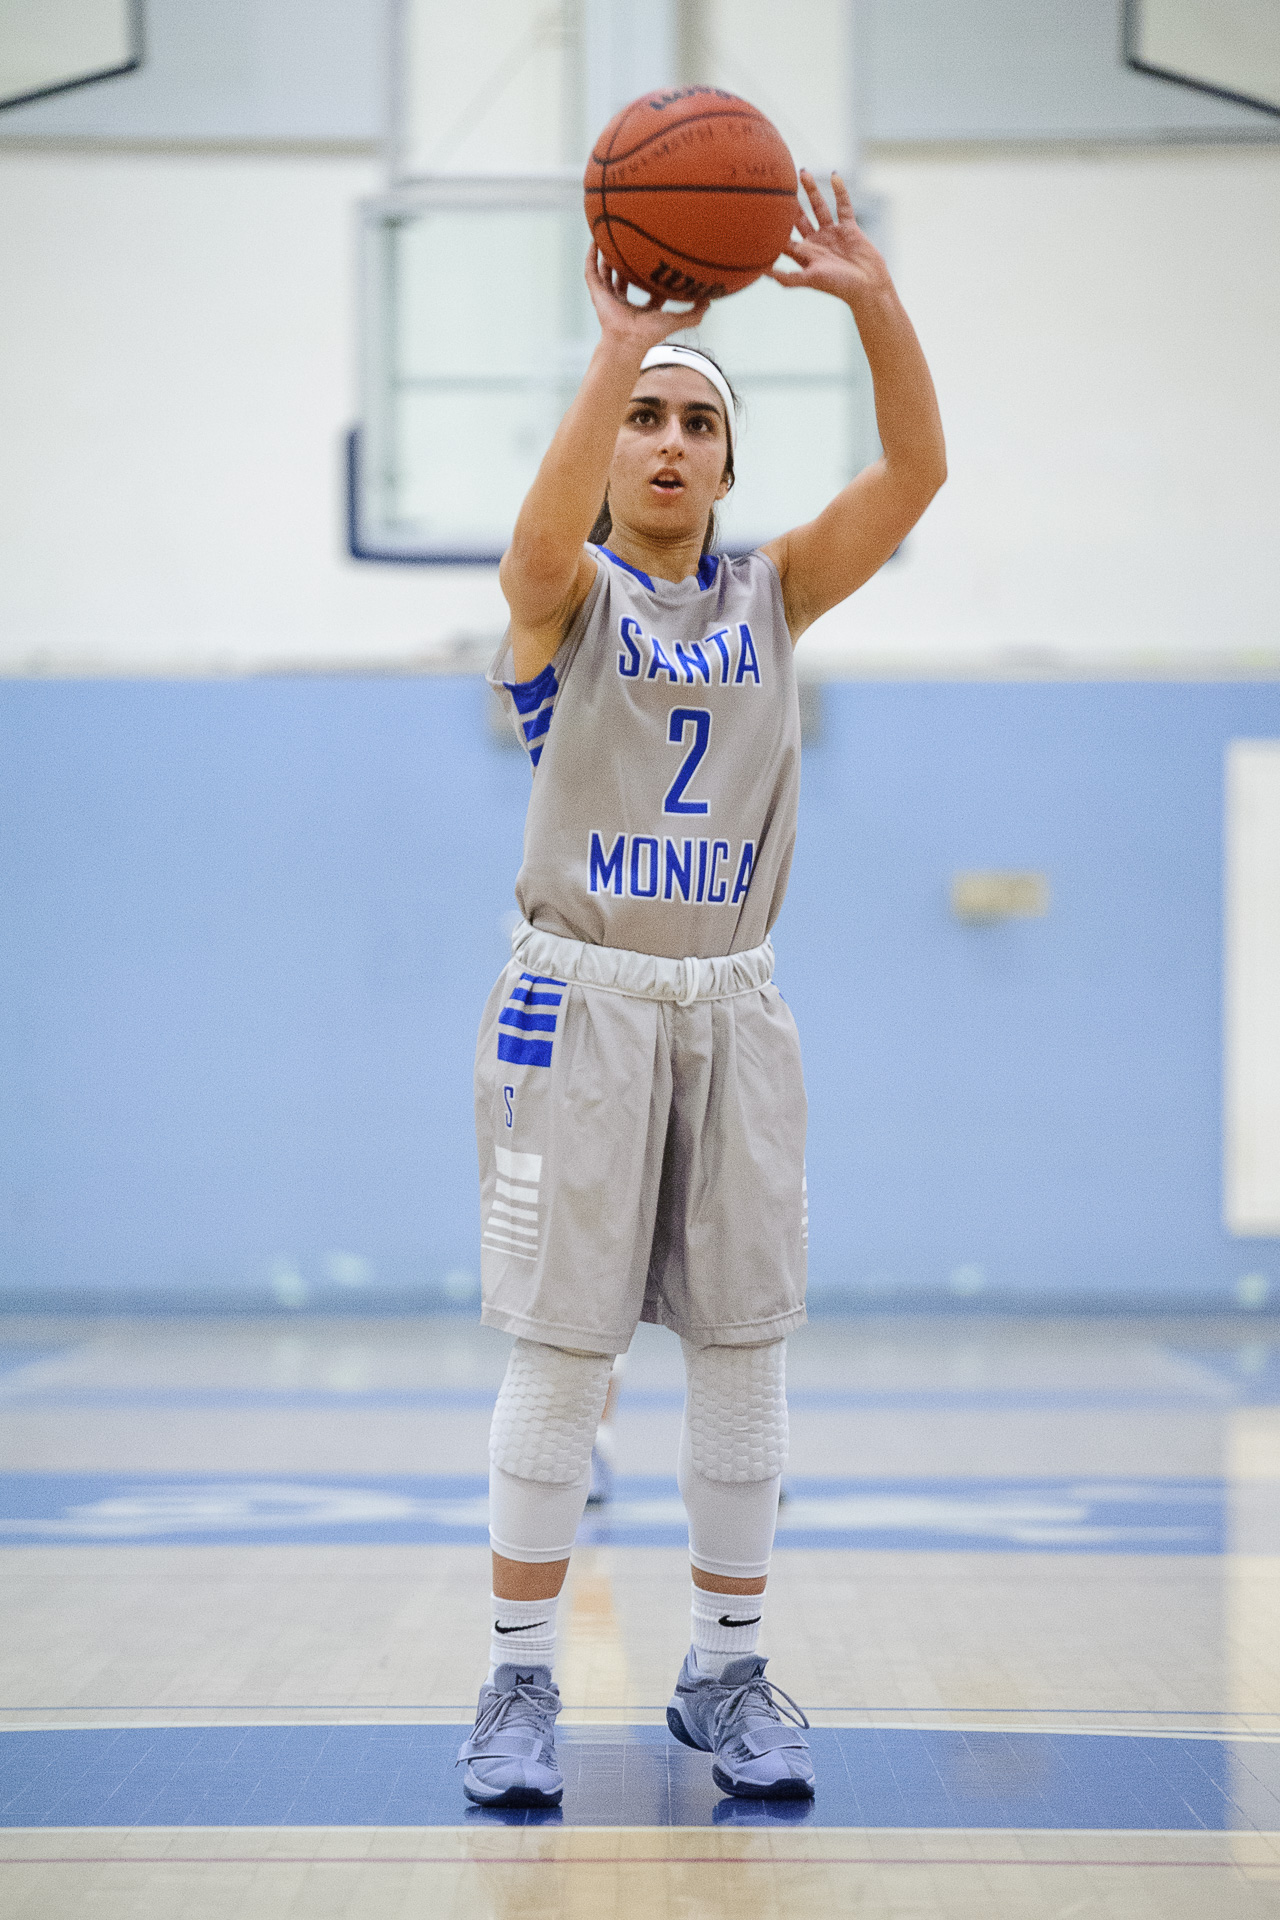 Guard Jessica Melamed (2) of Santa Monica College shoots free throws after getting fouled in the act of shooting. The Santa Monica College Corsairs lose the game 62-72 to the Bakersfield College Renegades. The game was held at the SMC Pavilion at the Santa Monica College Main Campus in Santa Monica, Calif.. January 20, 2018. (Photo by: Justin Han/Corsair Staff)